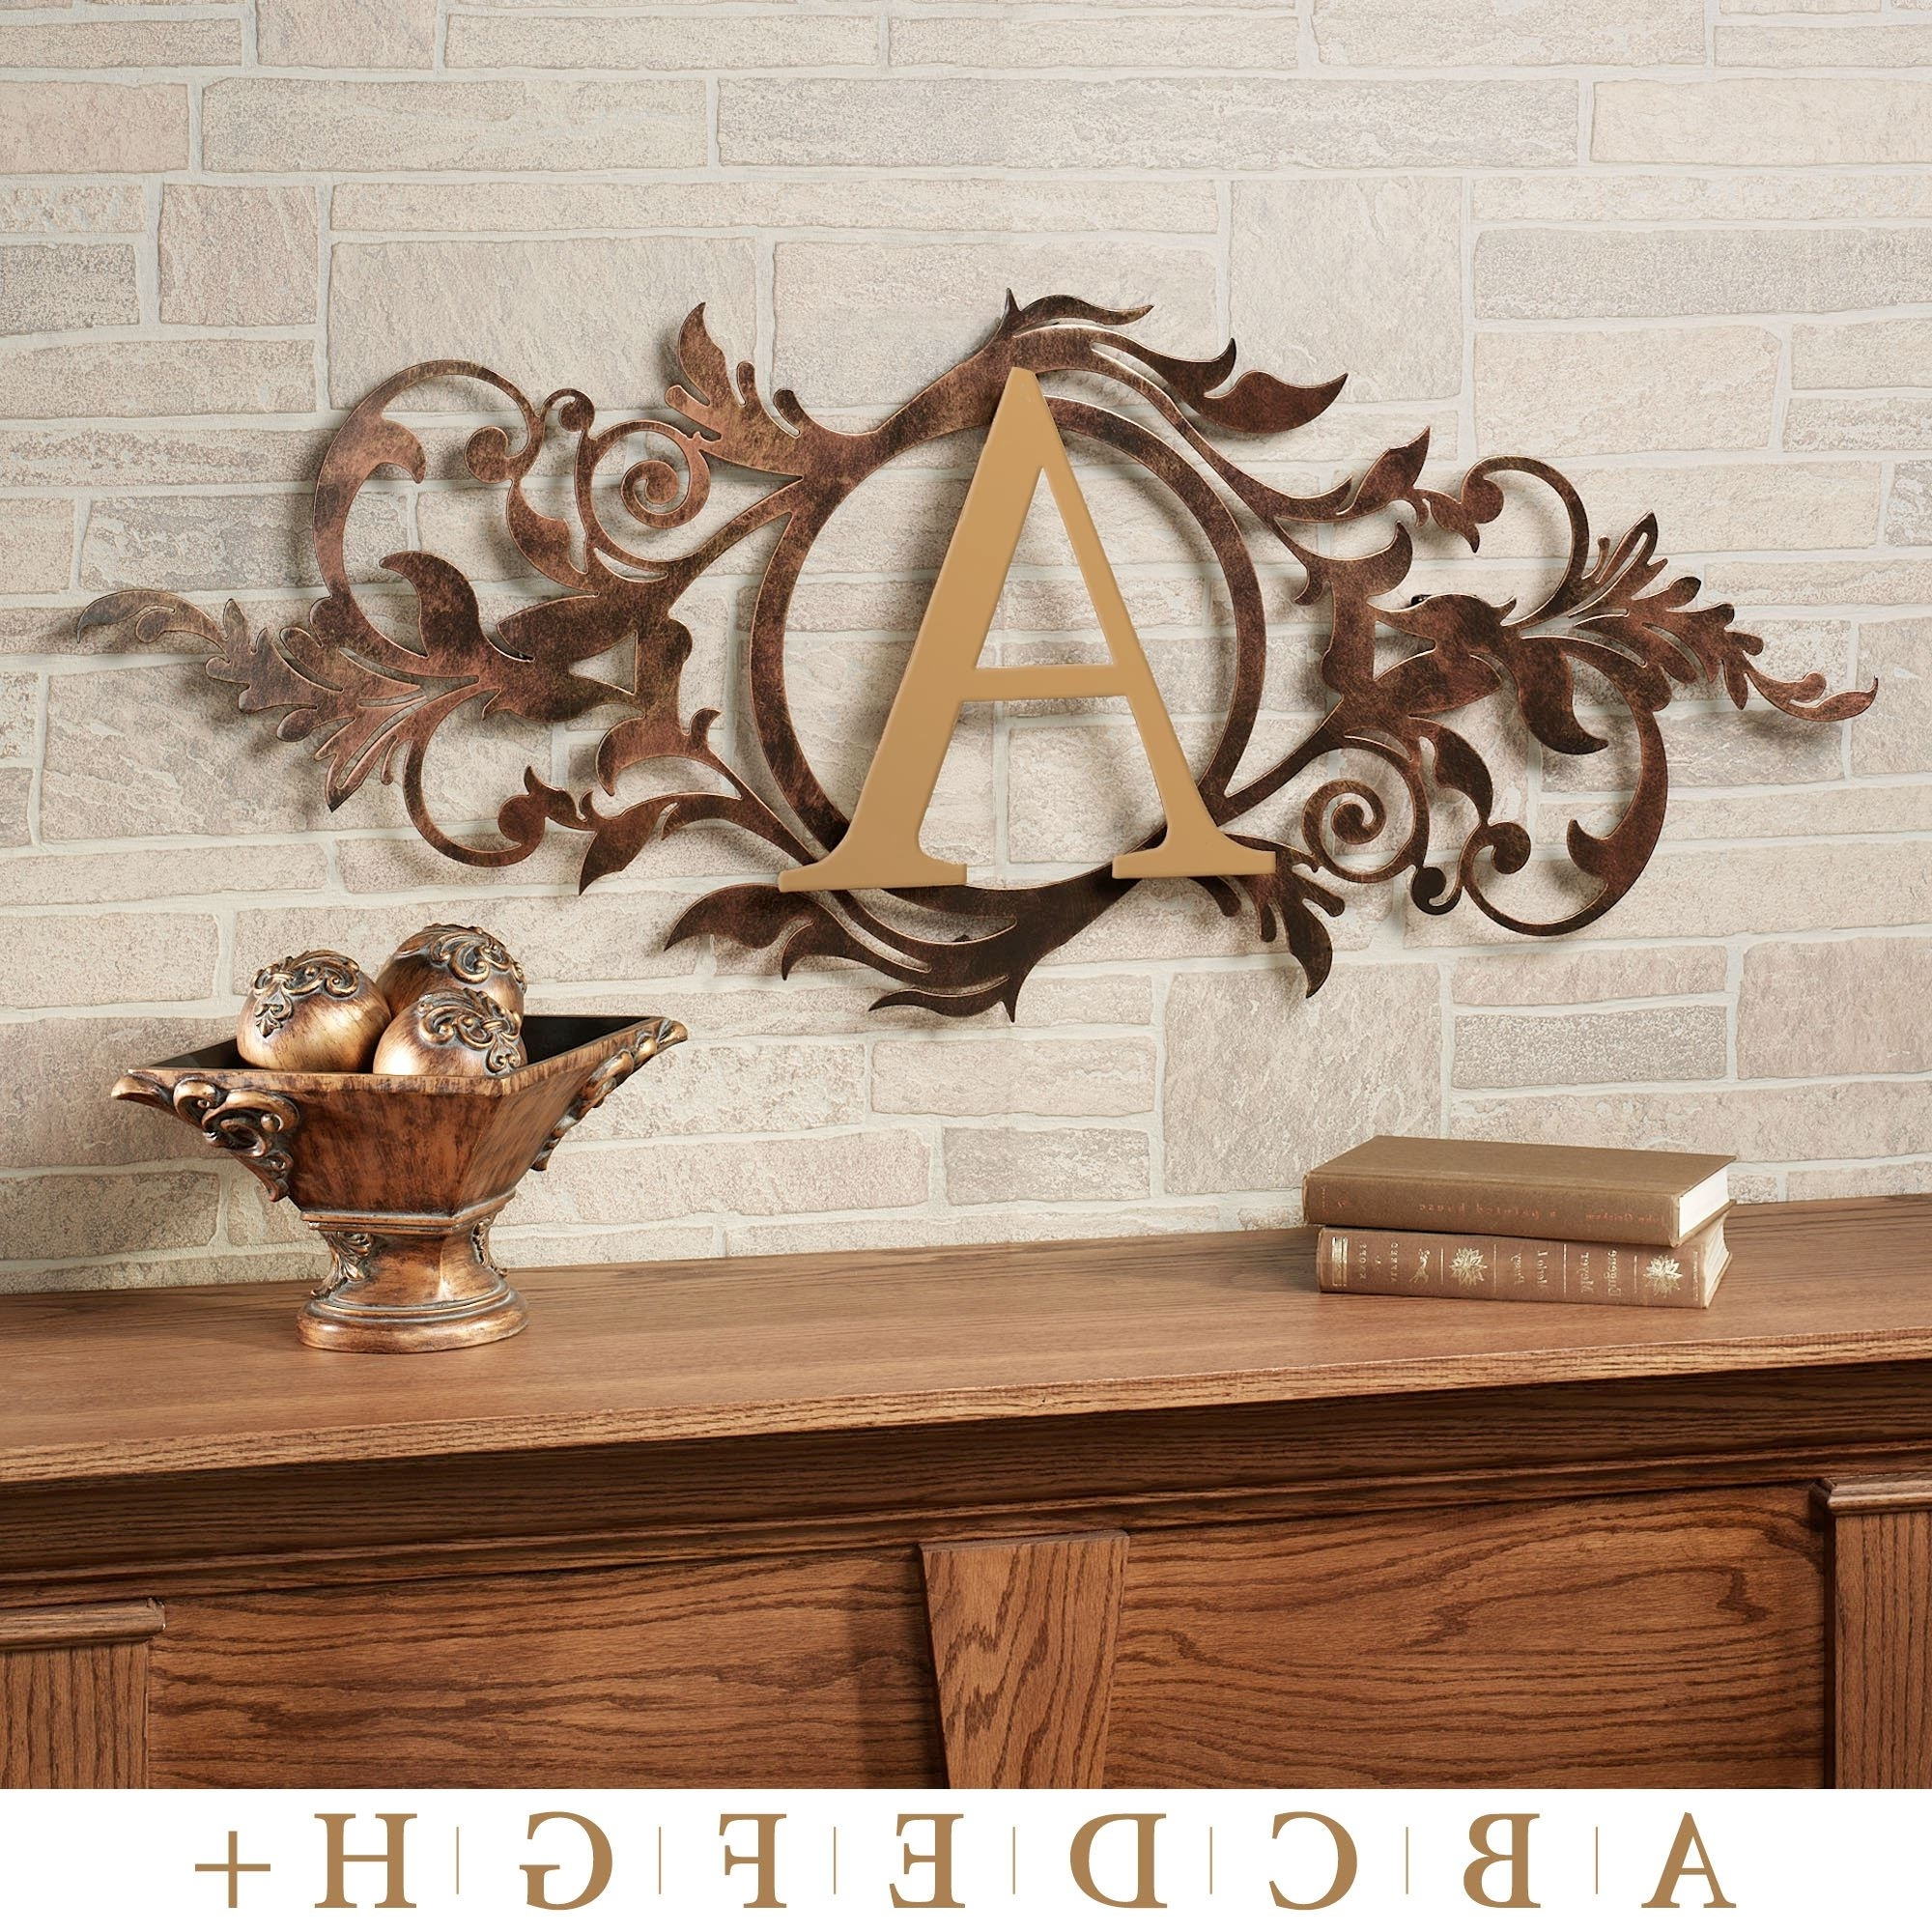 Decorative Initials Wall Art Intended For Current Wall Grilles (Gallery 11 of 15)